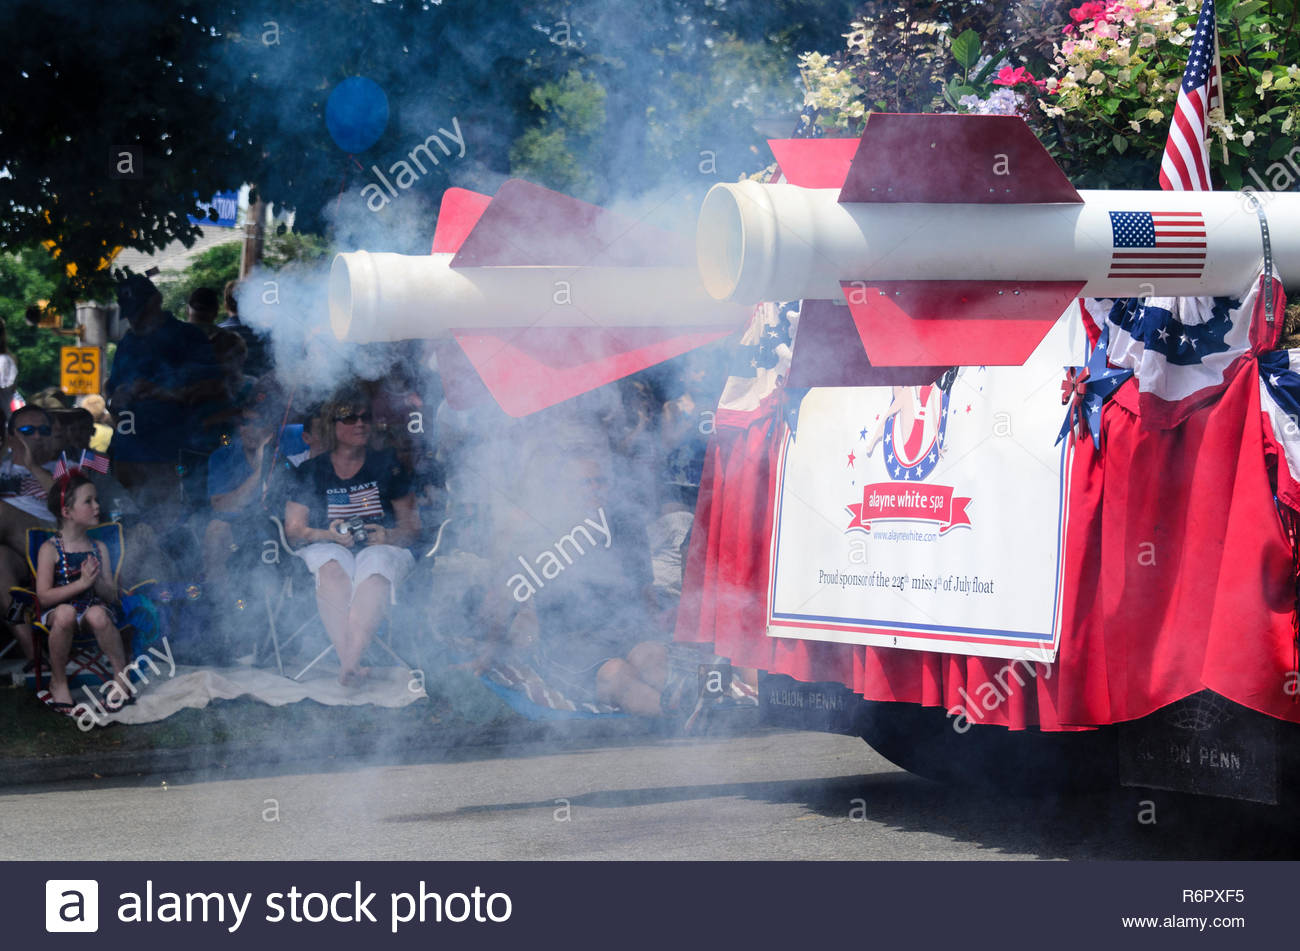 BRISTOL, RHODE ISLAND - JULY 4, 2011: Smoke from rocket-powered float at Fourth of July parade in Bristol, Rhode Island - Stock Image